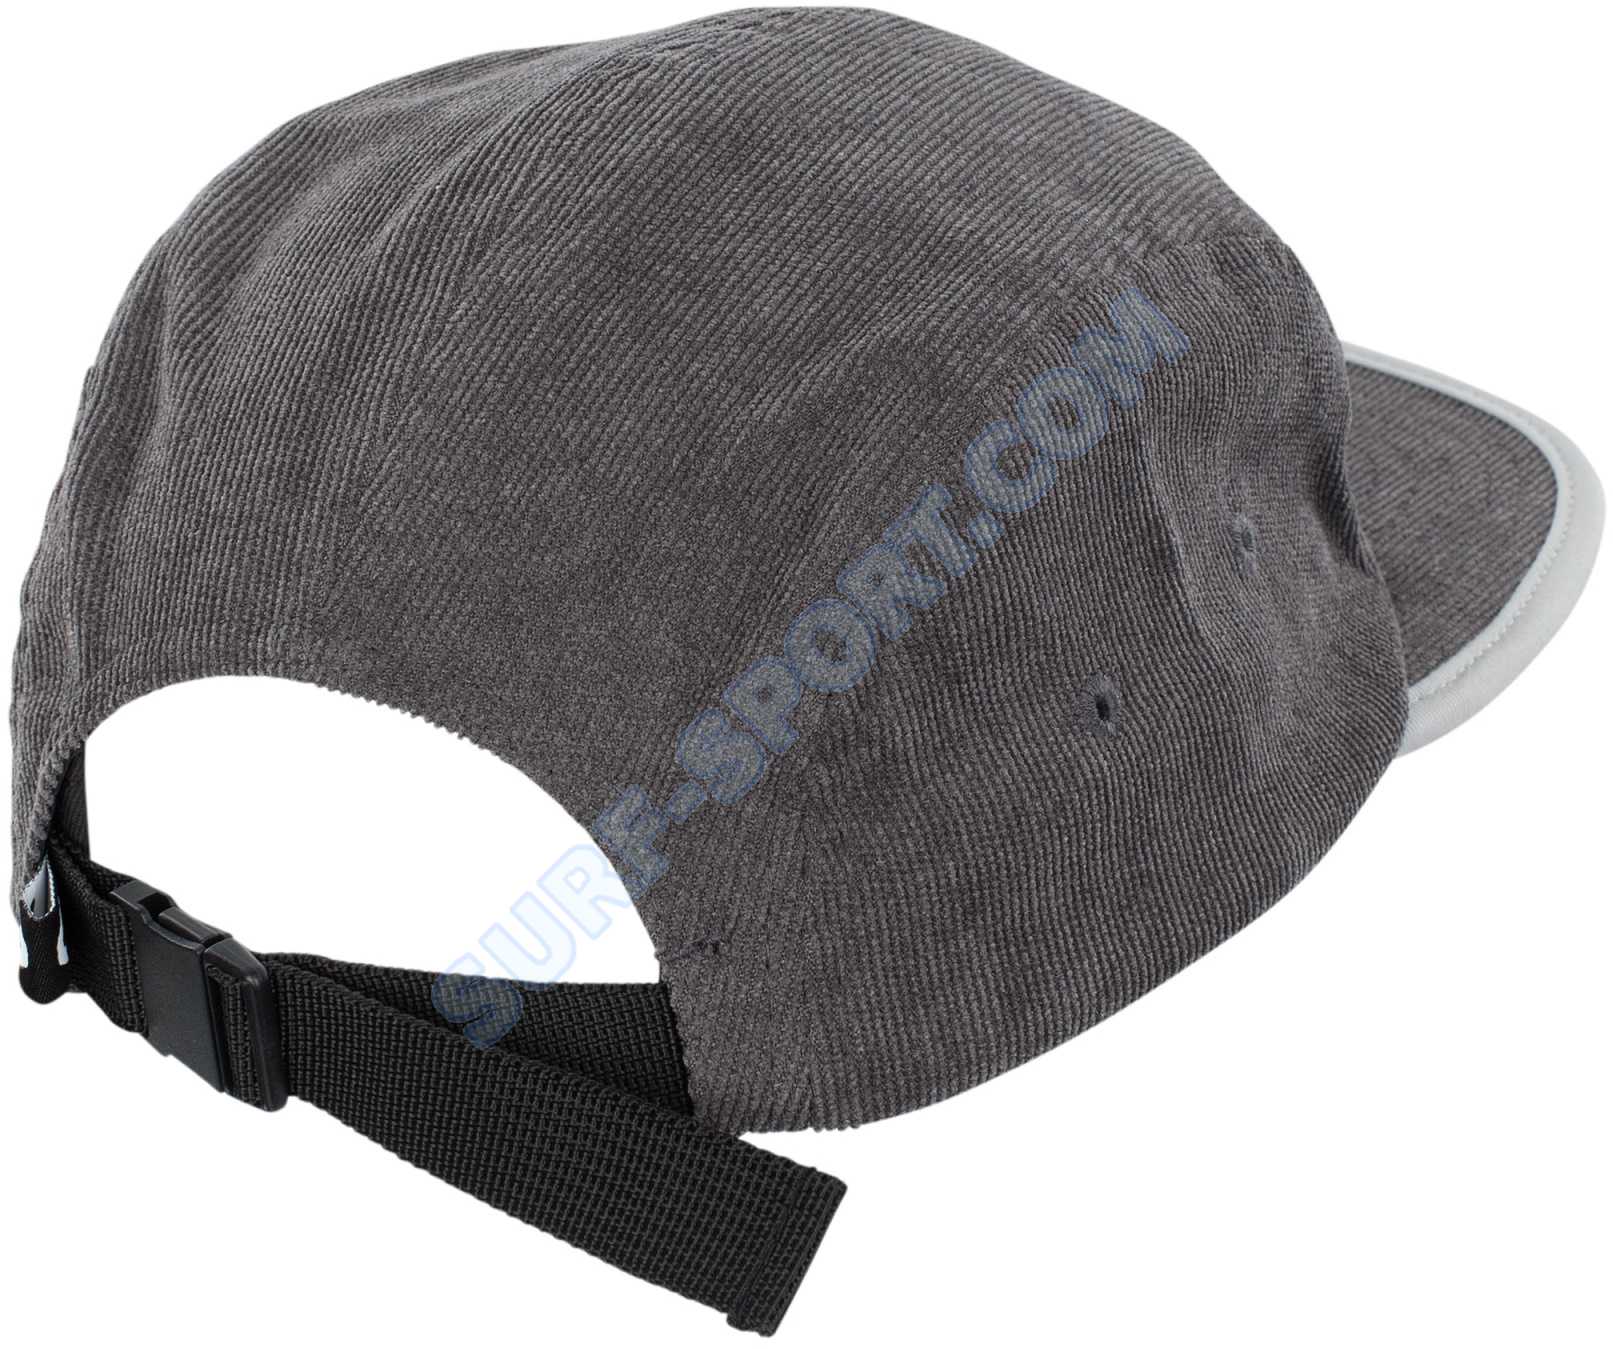 44200-5913_Duotone-New Era Cap-corduroy-dark gray-back.png